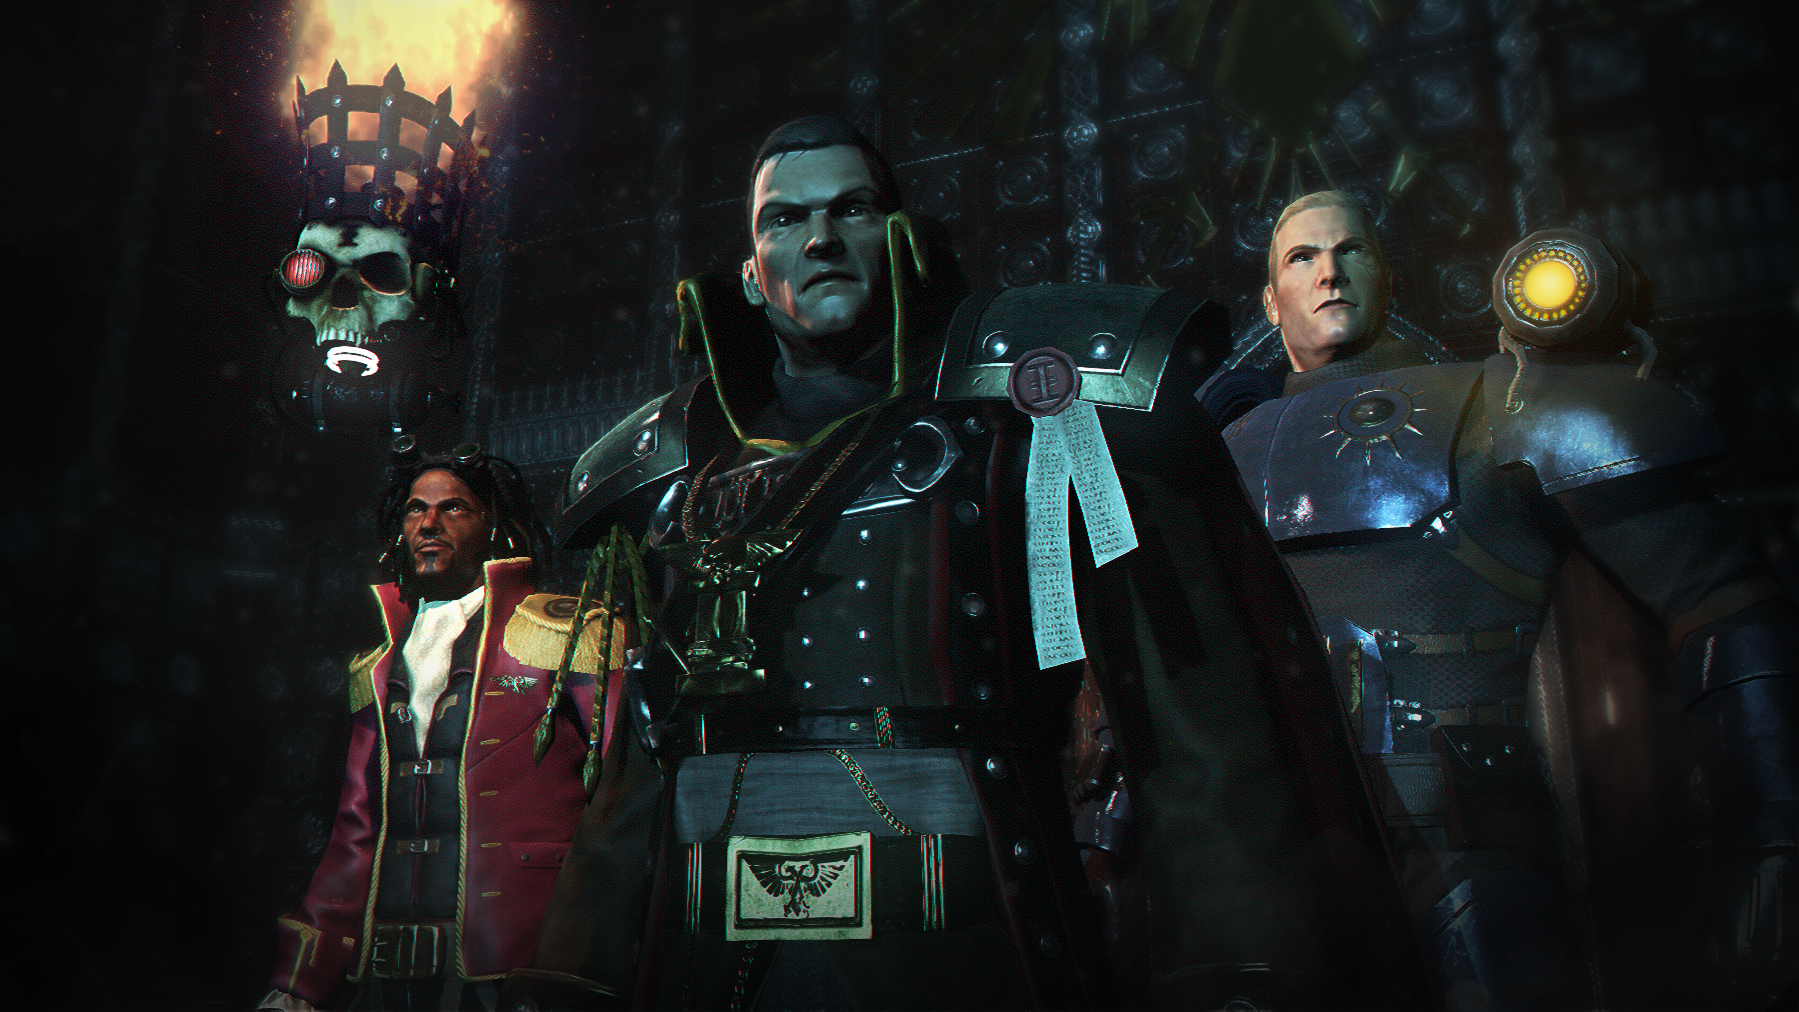 The Man in the High Castle creator to produce TV series based on Warhammer 40,000